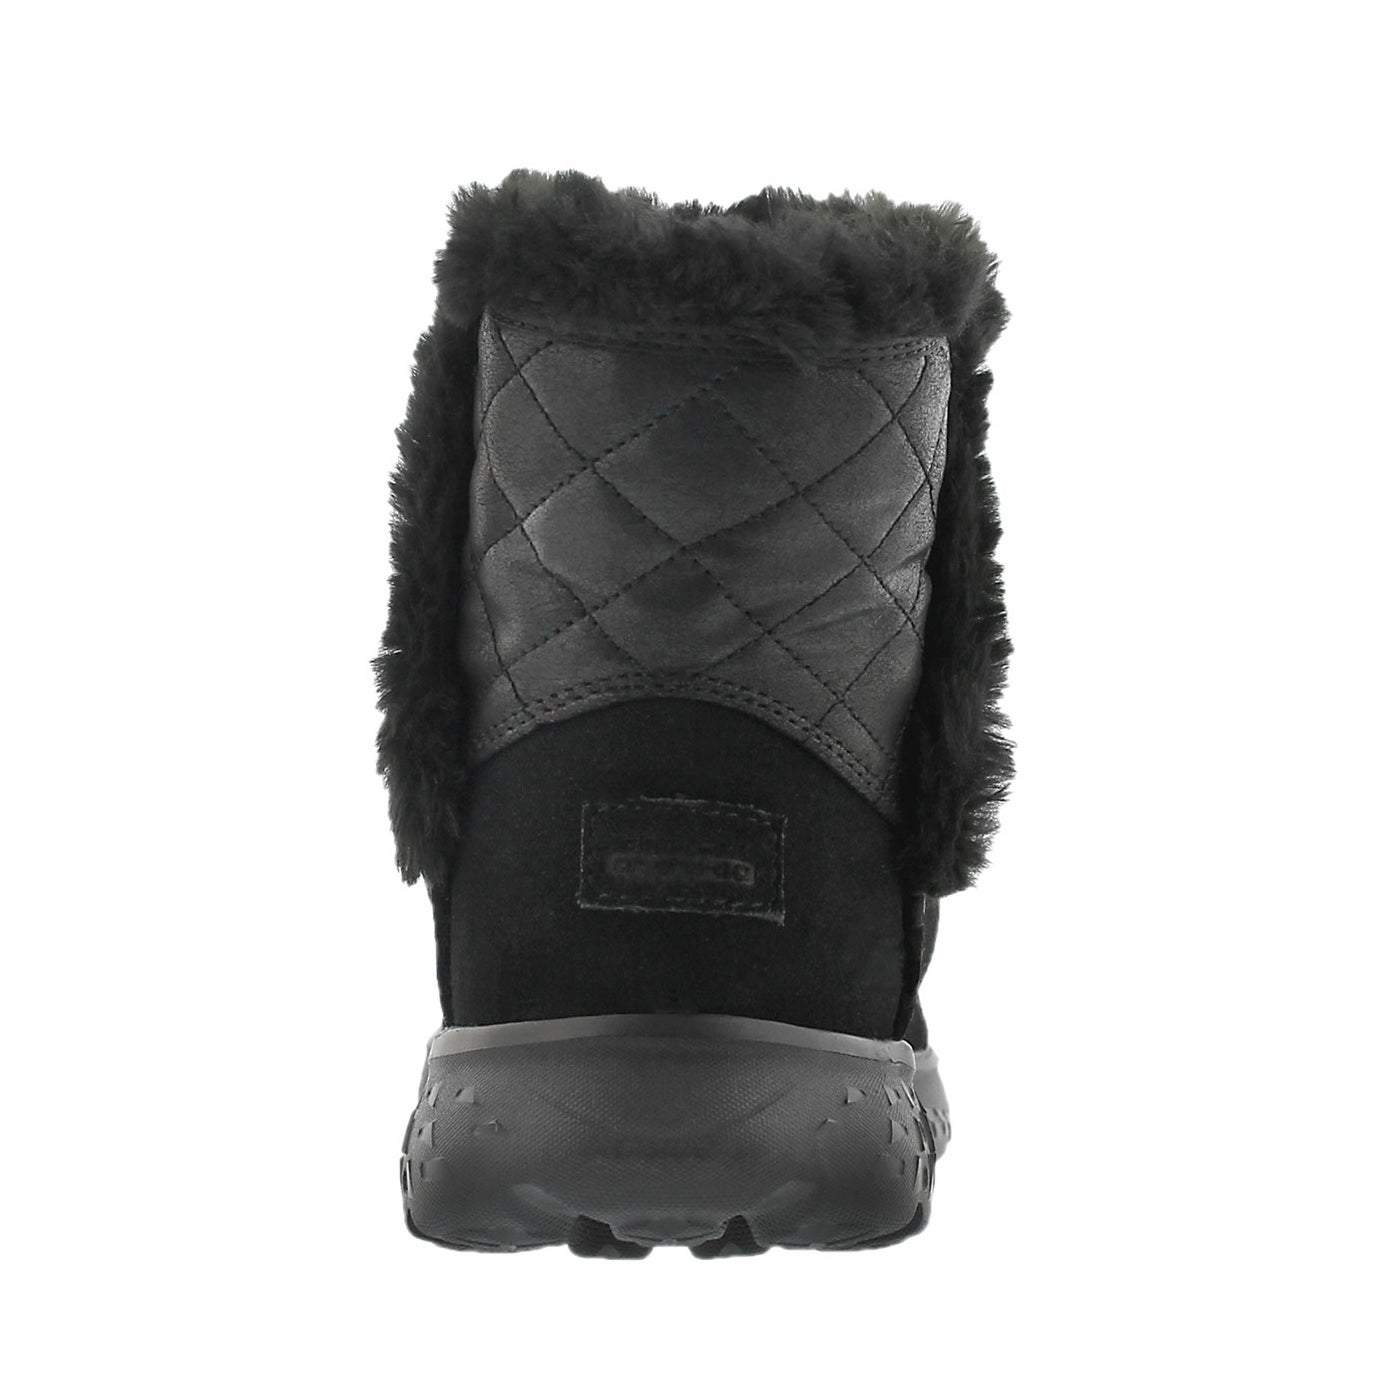 Lds 400 Cozies blk quilted suede boot